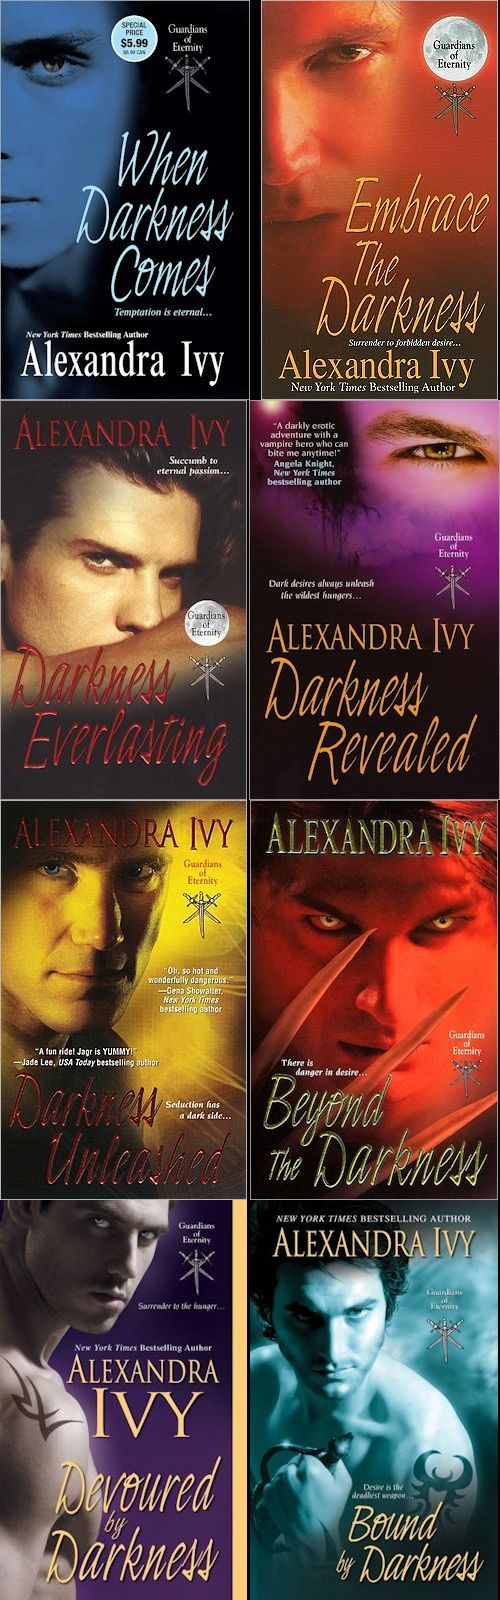 Authors After Dark Author Spotlight Interview - Alexandra Ivy